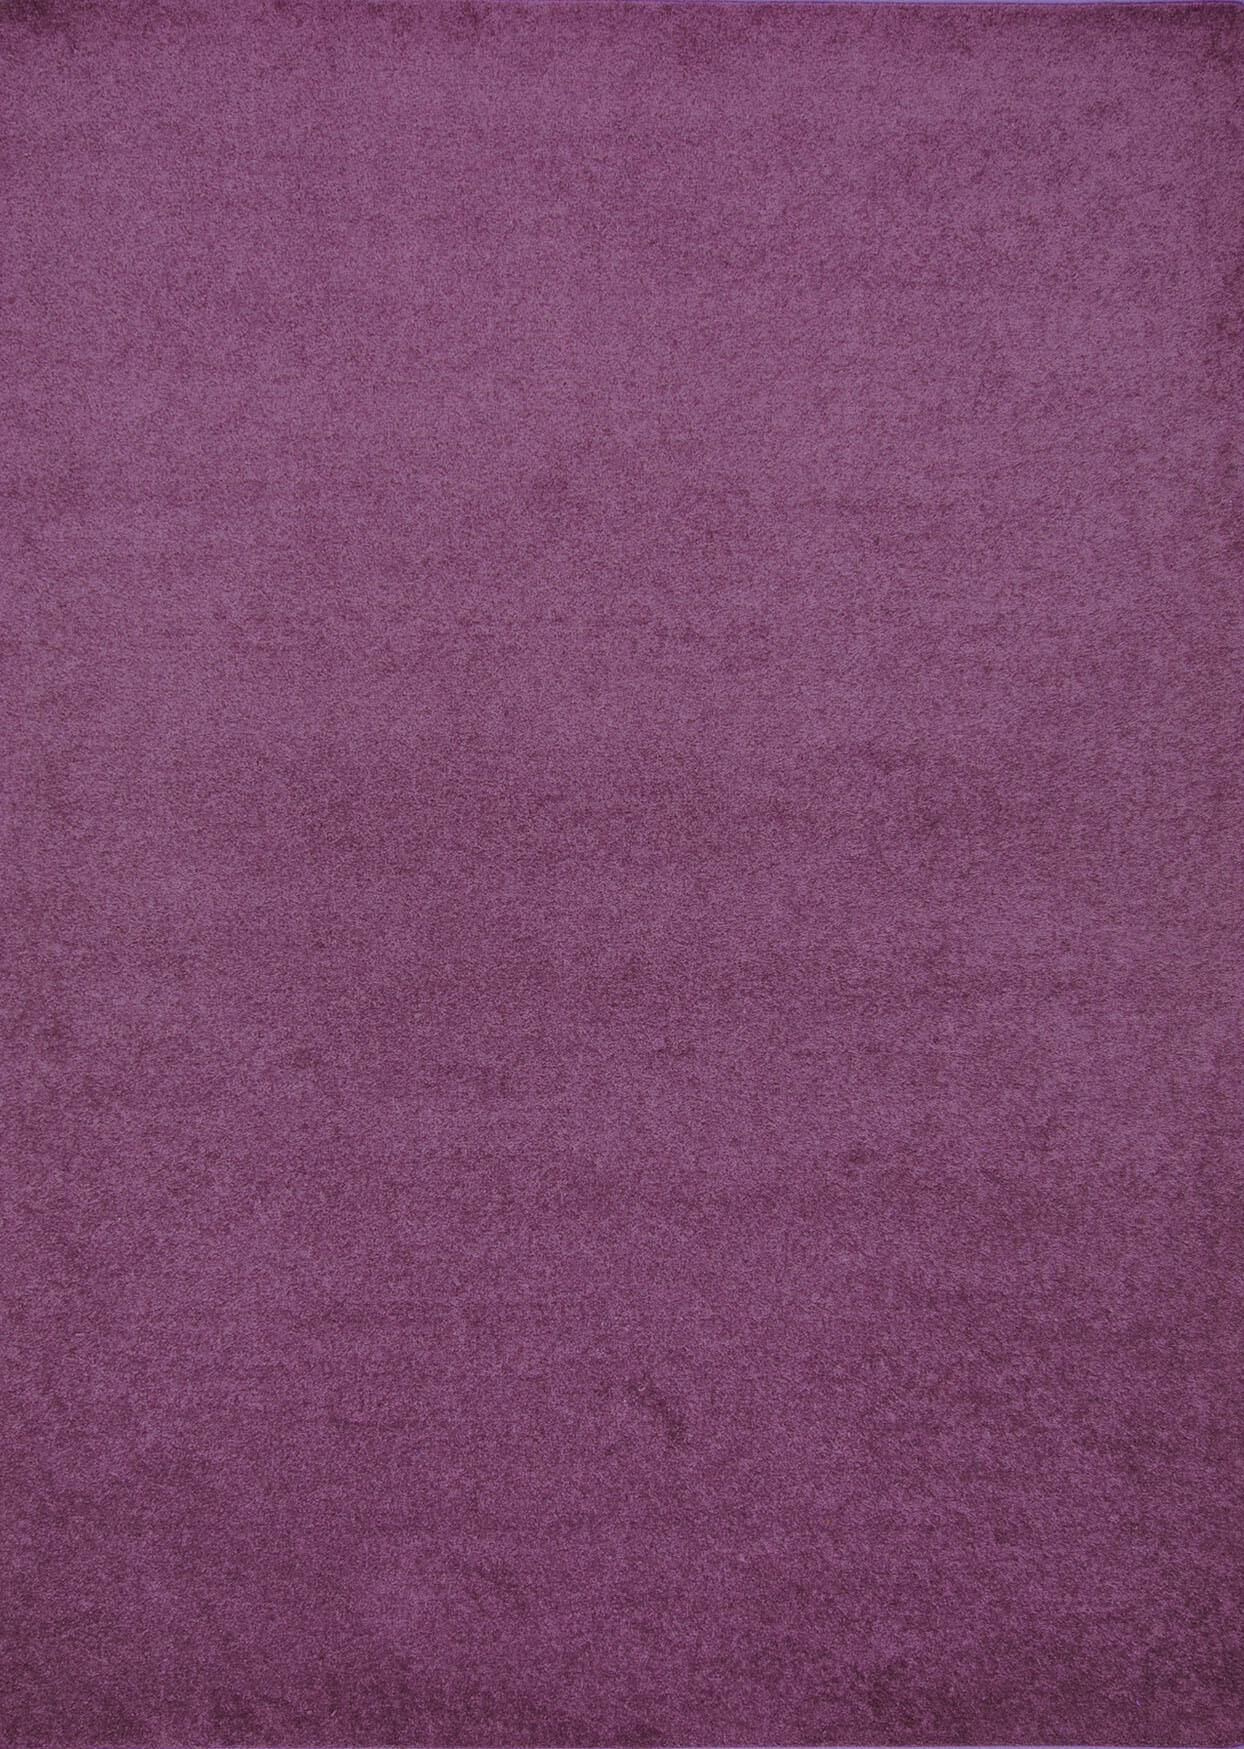 Henley Hand-Tufted Purple Area Rug Rug Size: 9' x 12'